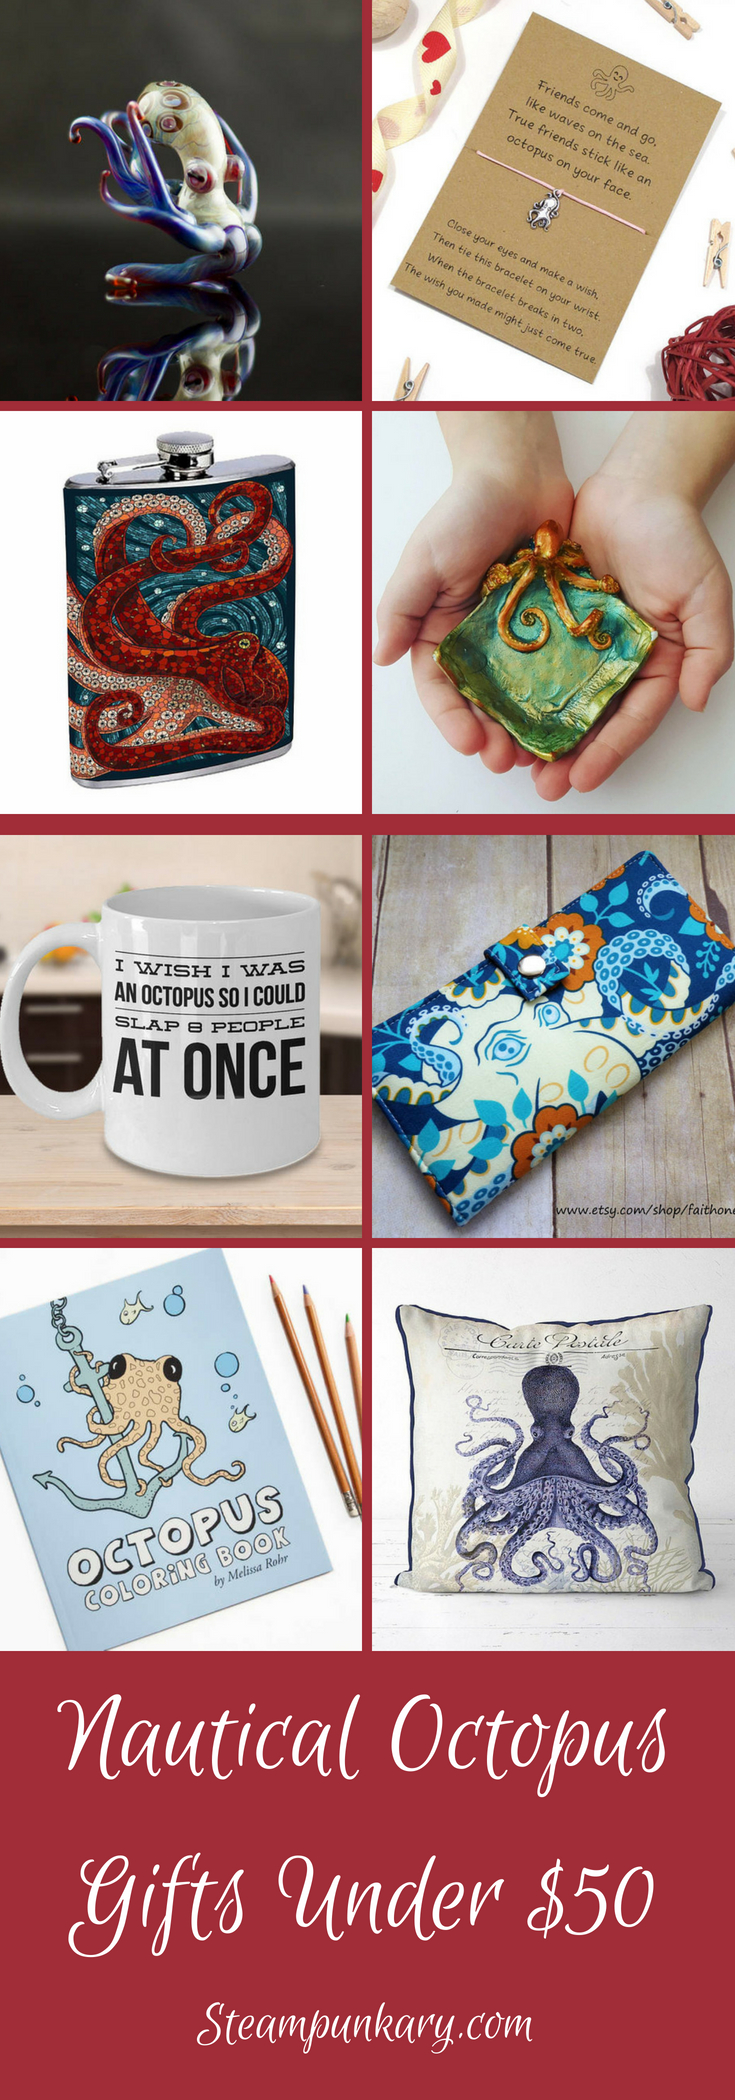 Nautical Octopus Gifts Under $50